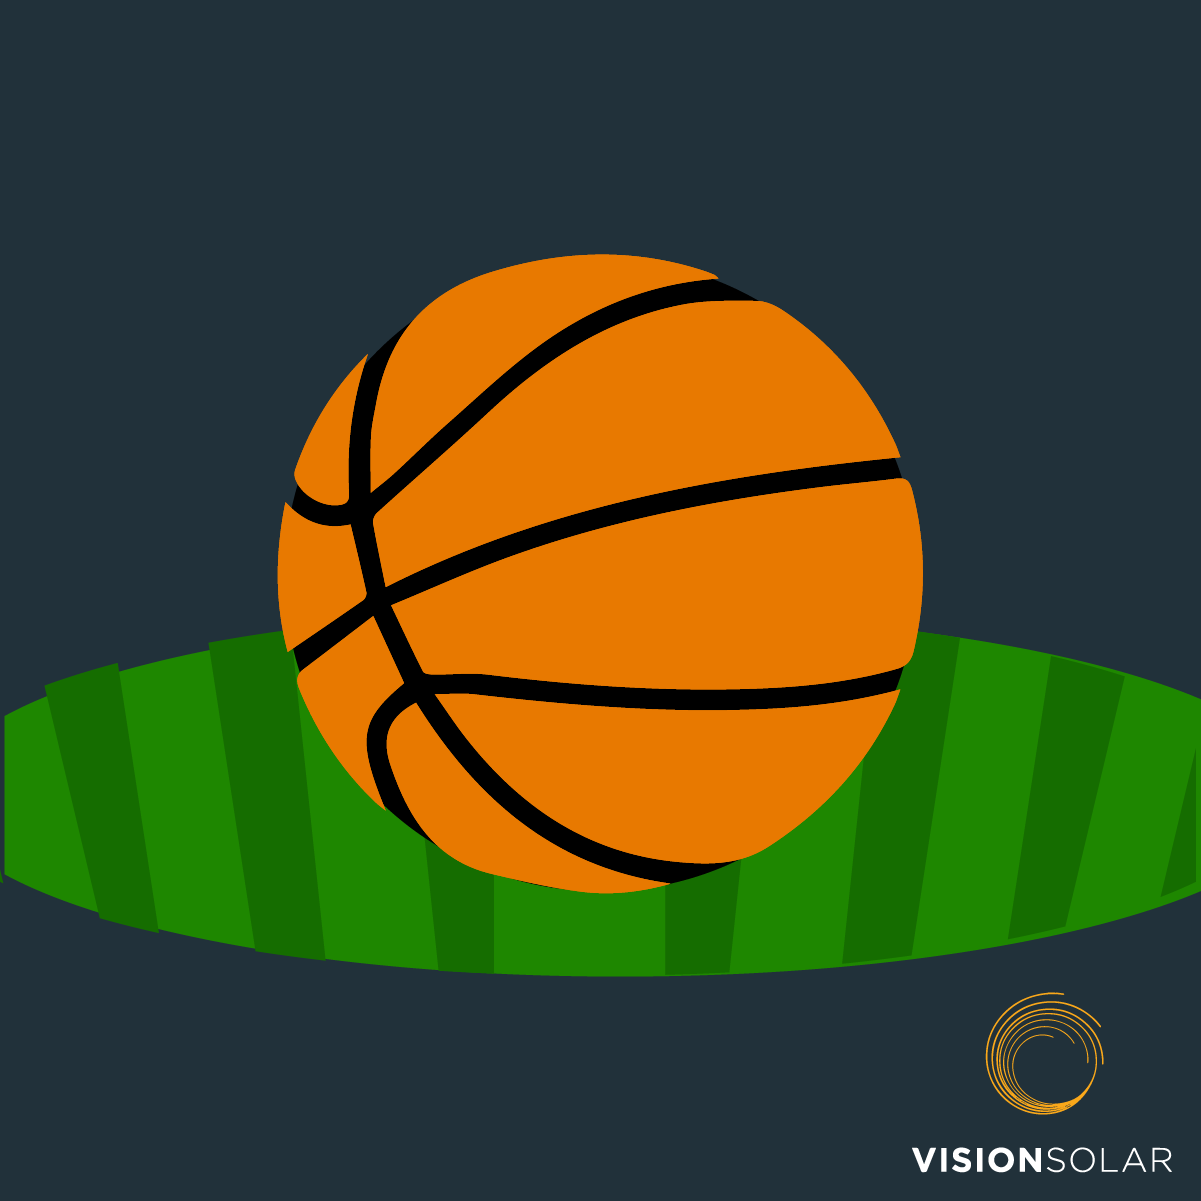 Vision Solar : Basketball Stadiums Powered By Solar